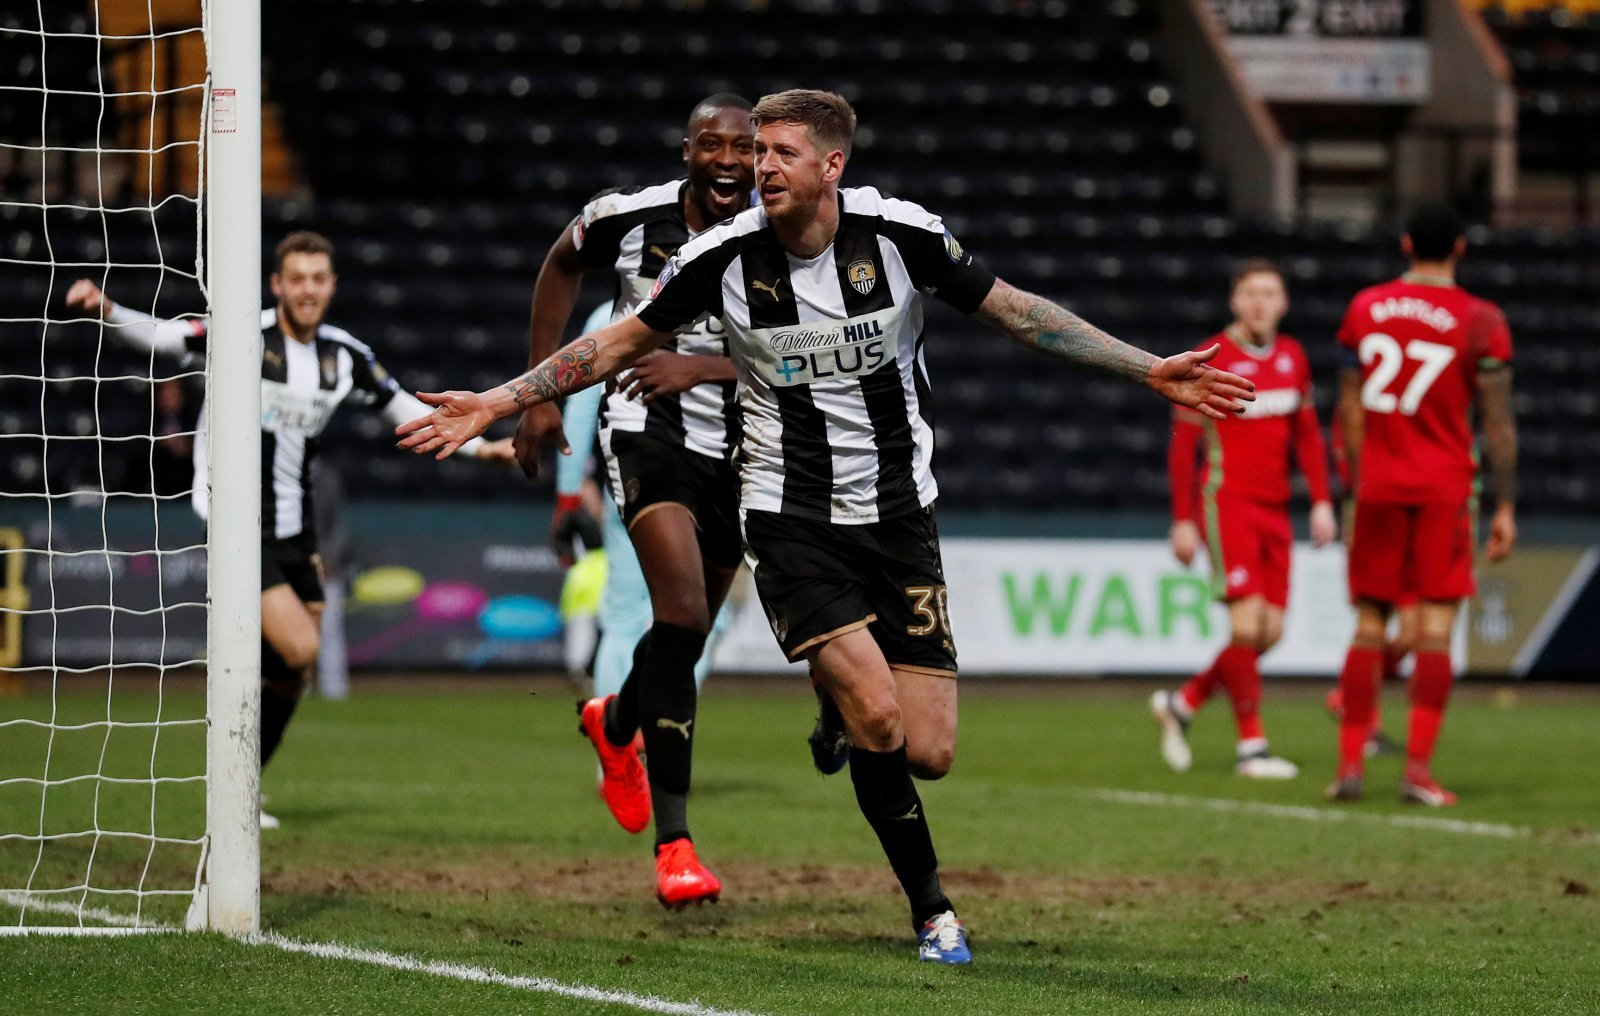 Introducing Jon Stead: The man to save Notts County from the drop